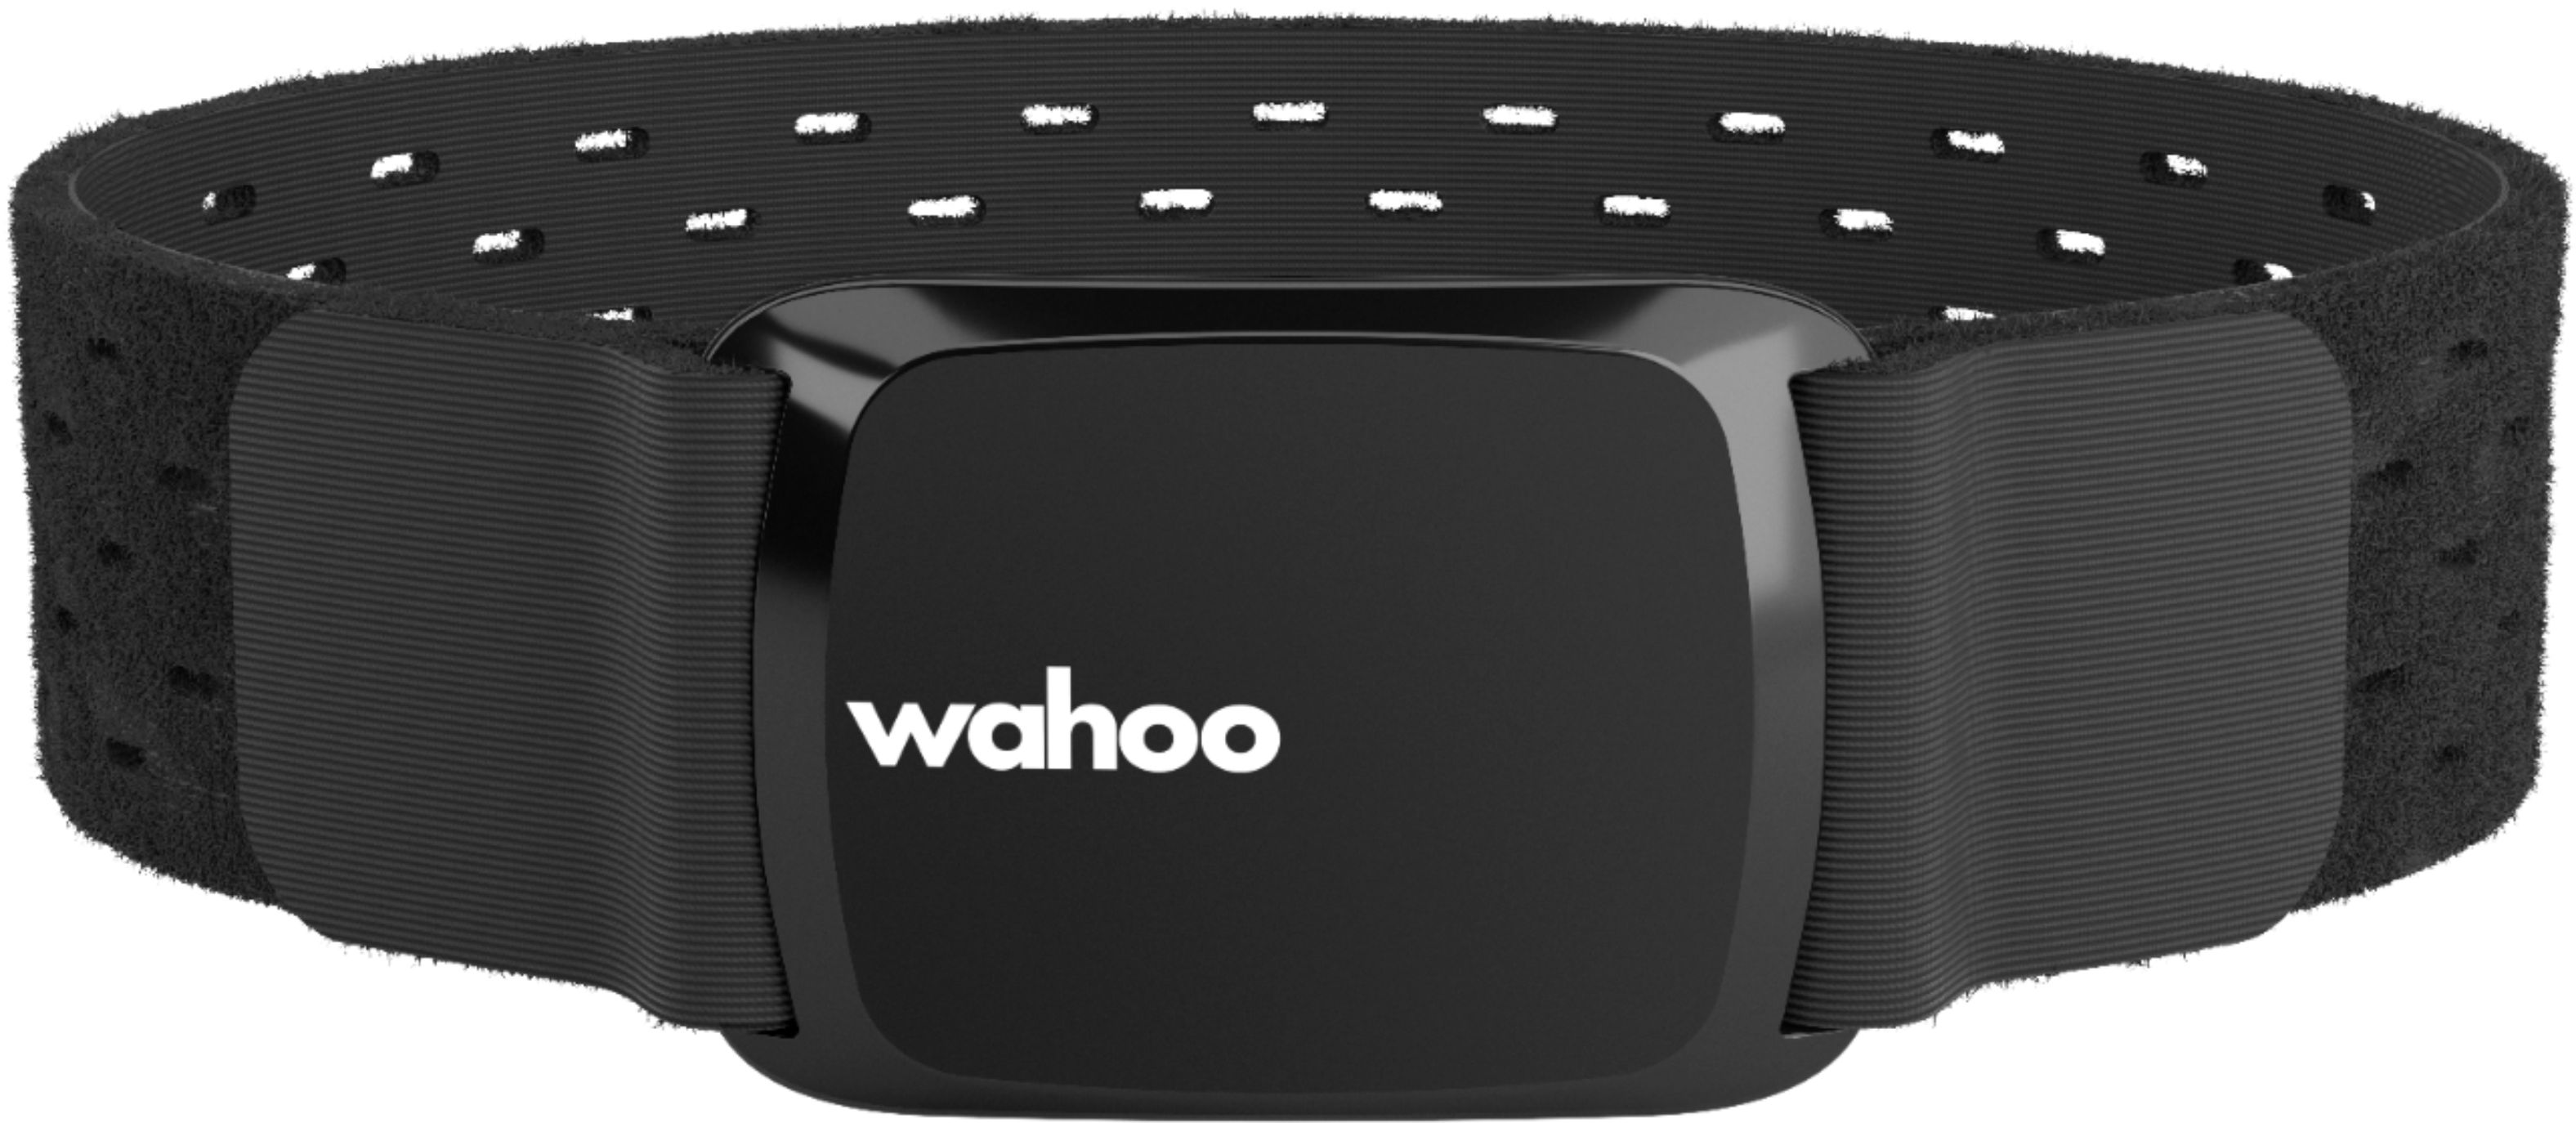 Wahoo - TICKR FIT Activity Tracker + Heart Rate